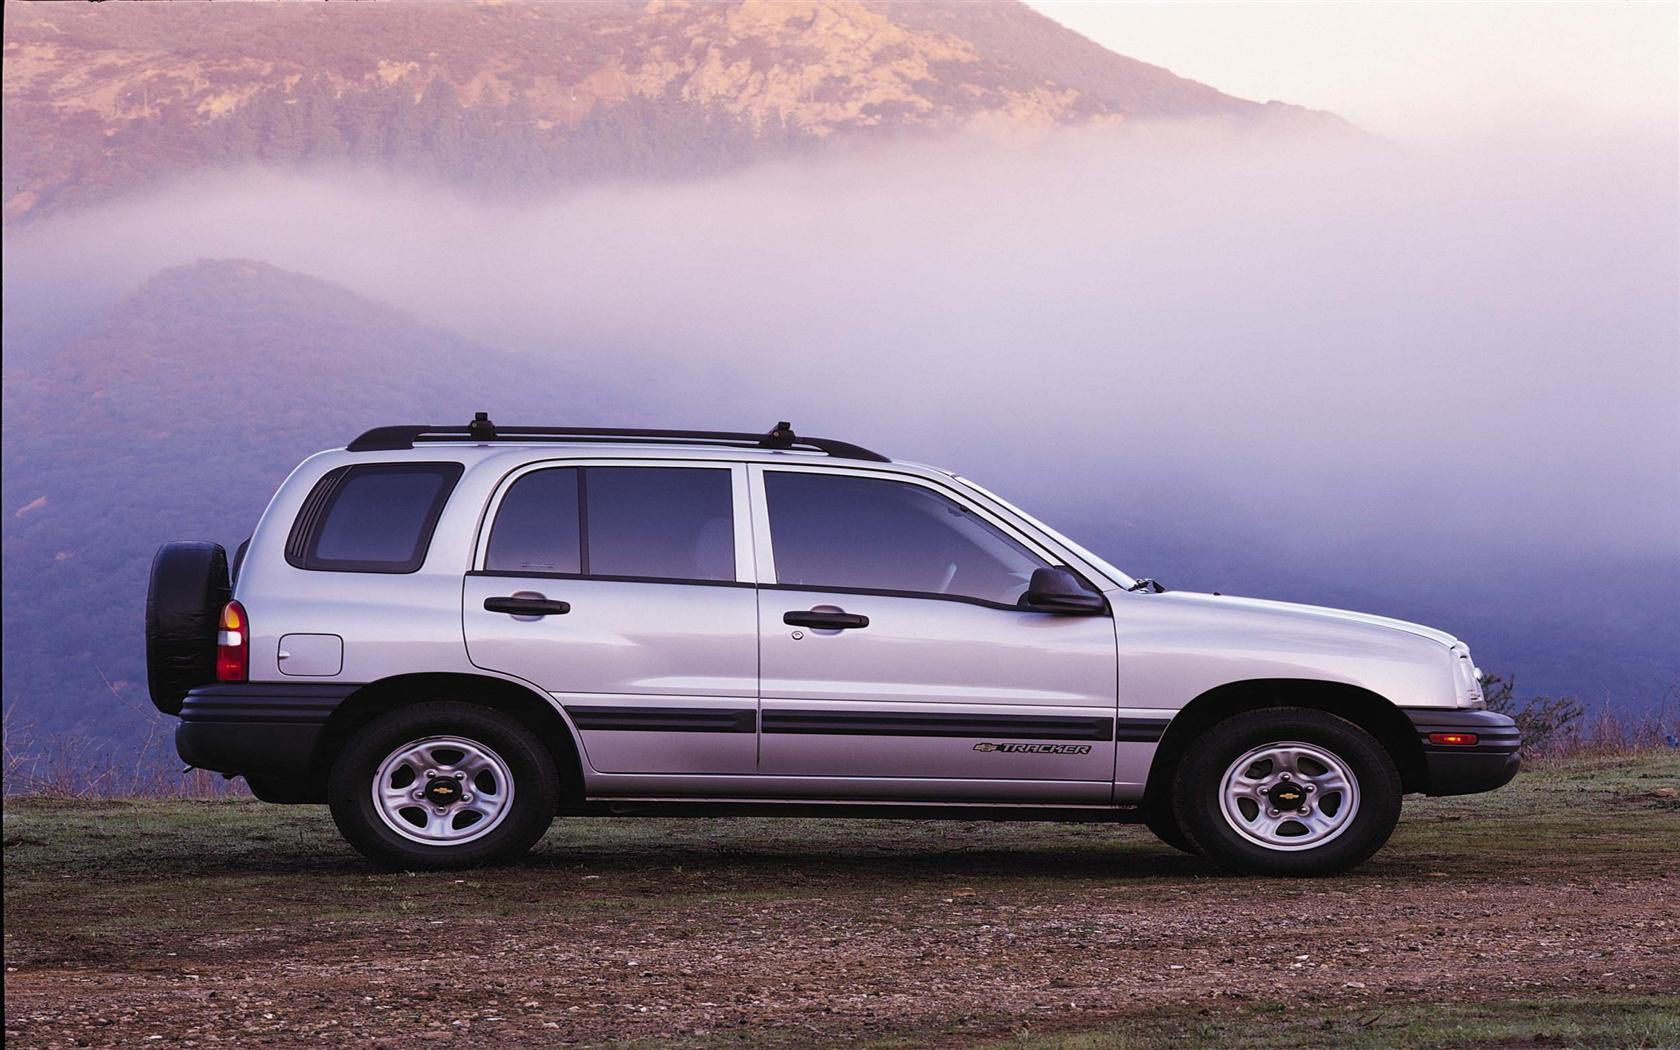 2000 Chevrolet Tracker History, Pictures, Value, Auction Sales, Research  and News